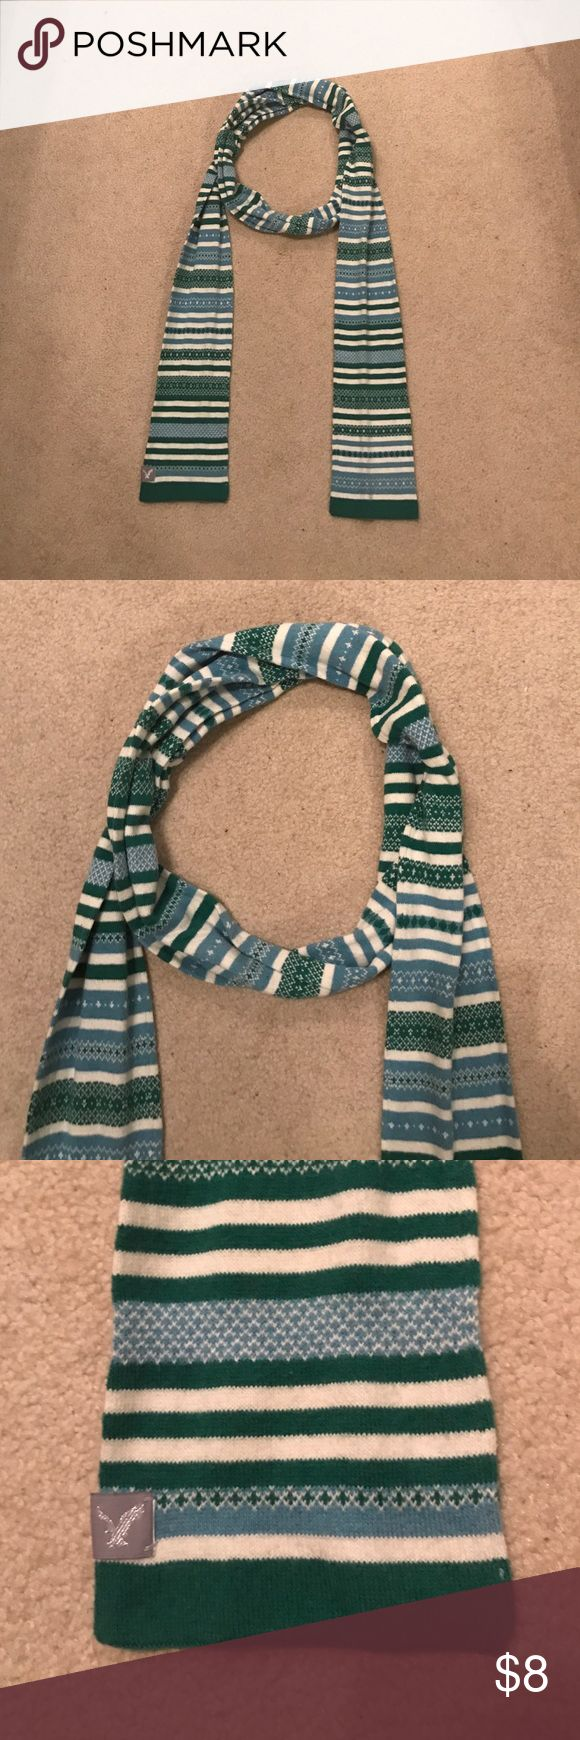 🎉Final 2 Days!🎉 American Eagle Scarf This comfy American Eagle Scarf has only been worn a few times and is still in great condition! Perfect winter addition to any outfit American Eagle Outfitters Accessories Scarves & Wraps